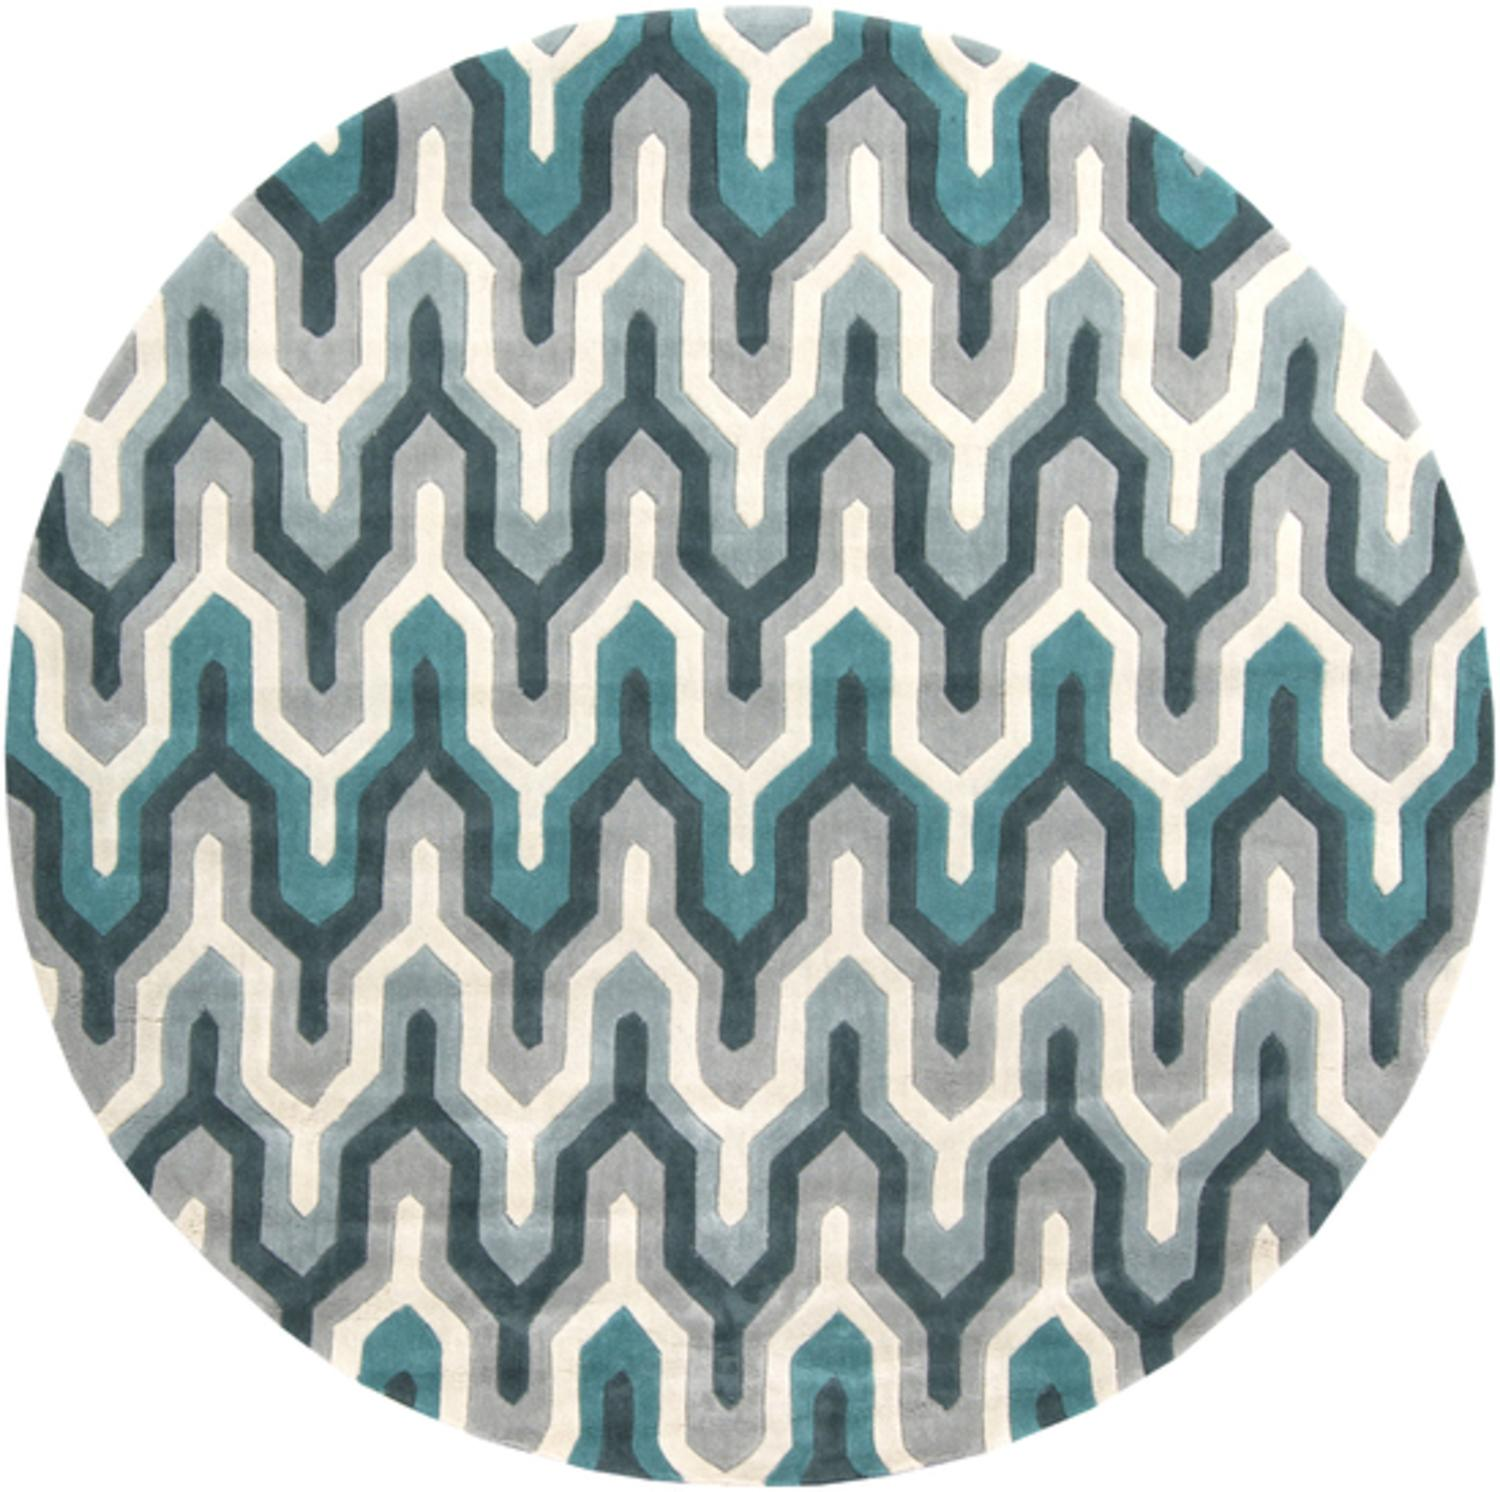 8' Egyptian Tefnut Teal Blue and Gray Hand Round Tufted Area Throw Rug